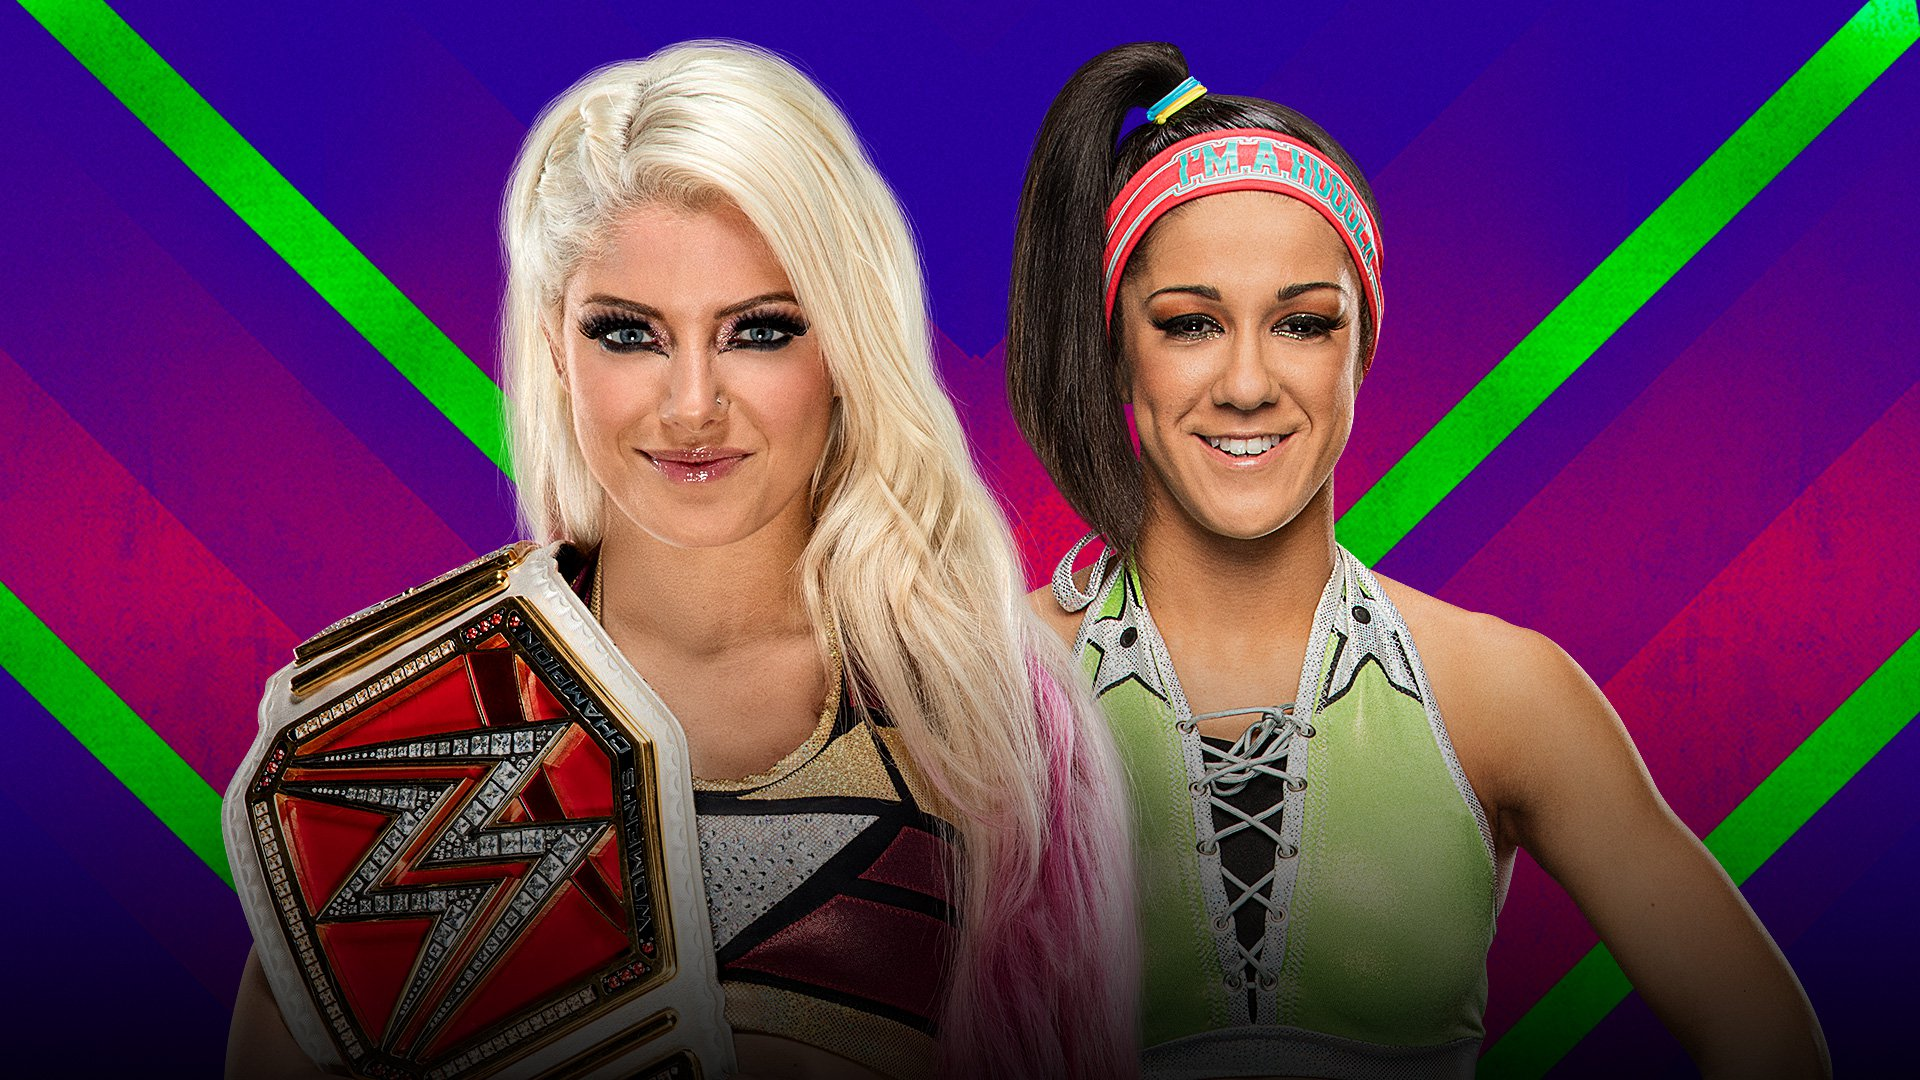 WWE Extreme Rules 2017: Alexa Bliss vs. Bayley